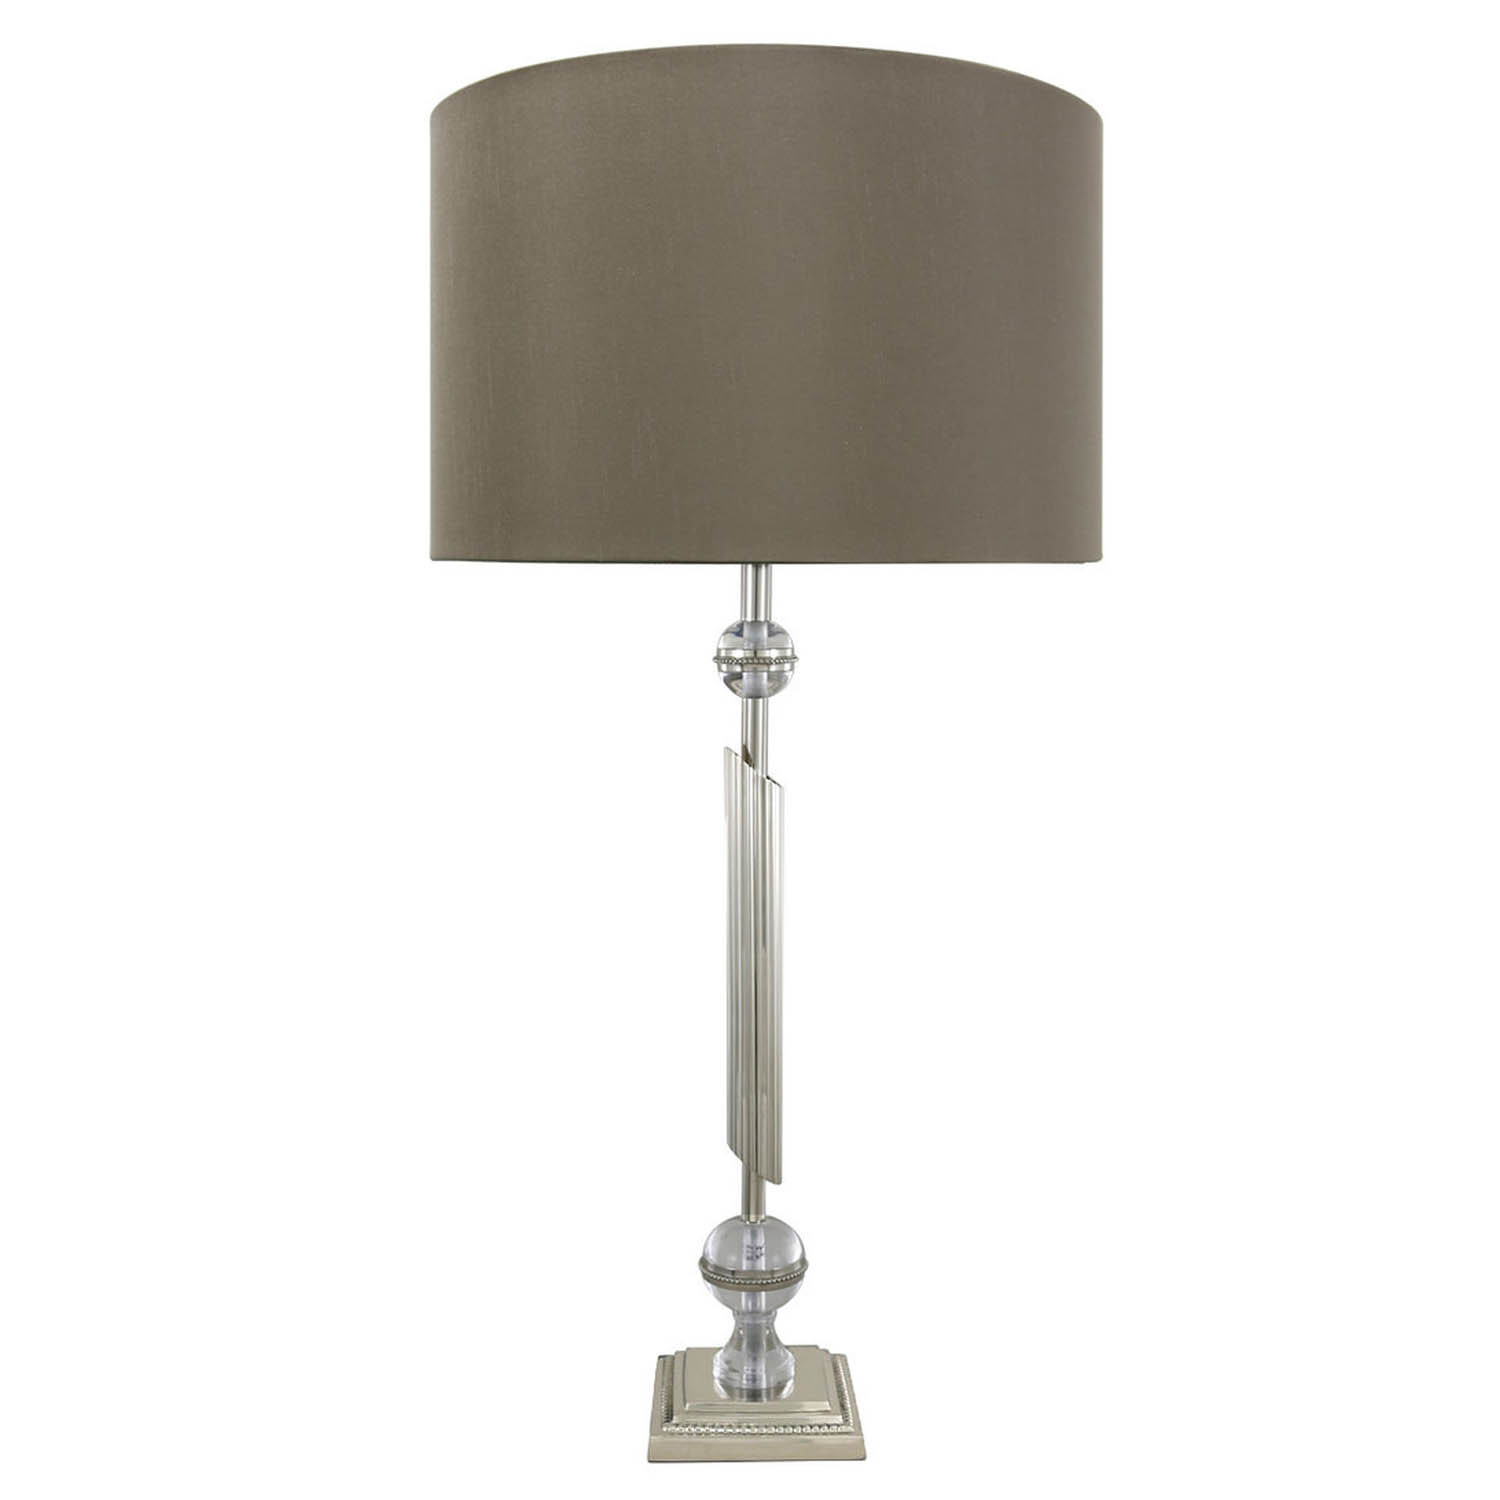 Details About Chrome Spiral Ball Modern Table Lamp With Faux Silk Taupe Shade Vintage Art Deco